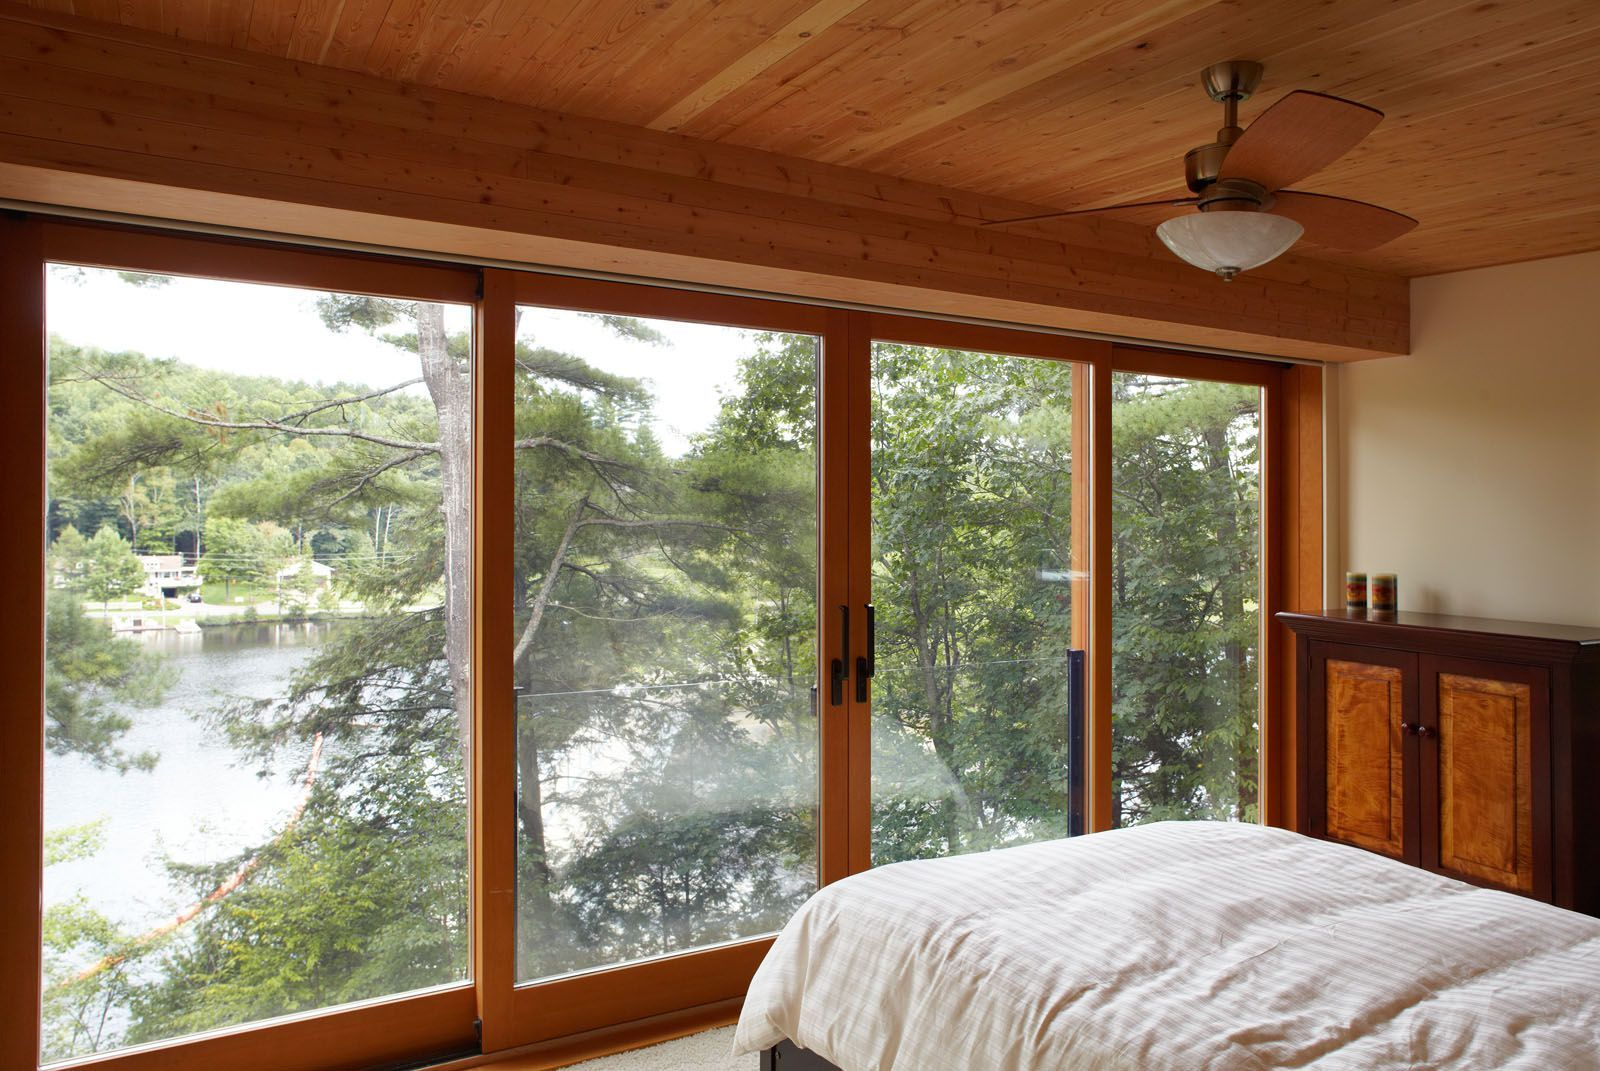 Above exterior window decor  marylakeresidence  bedrooms with a view  pinterest  mary